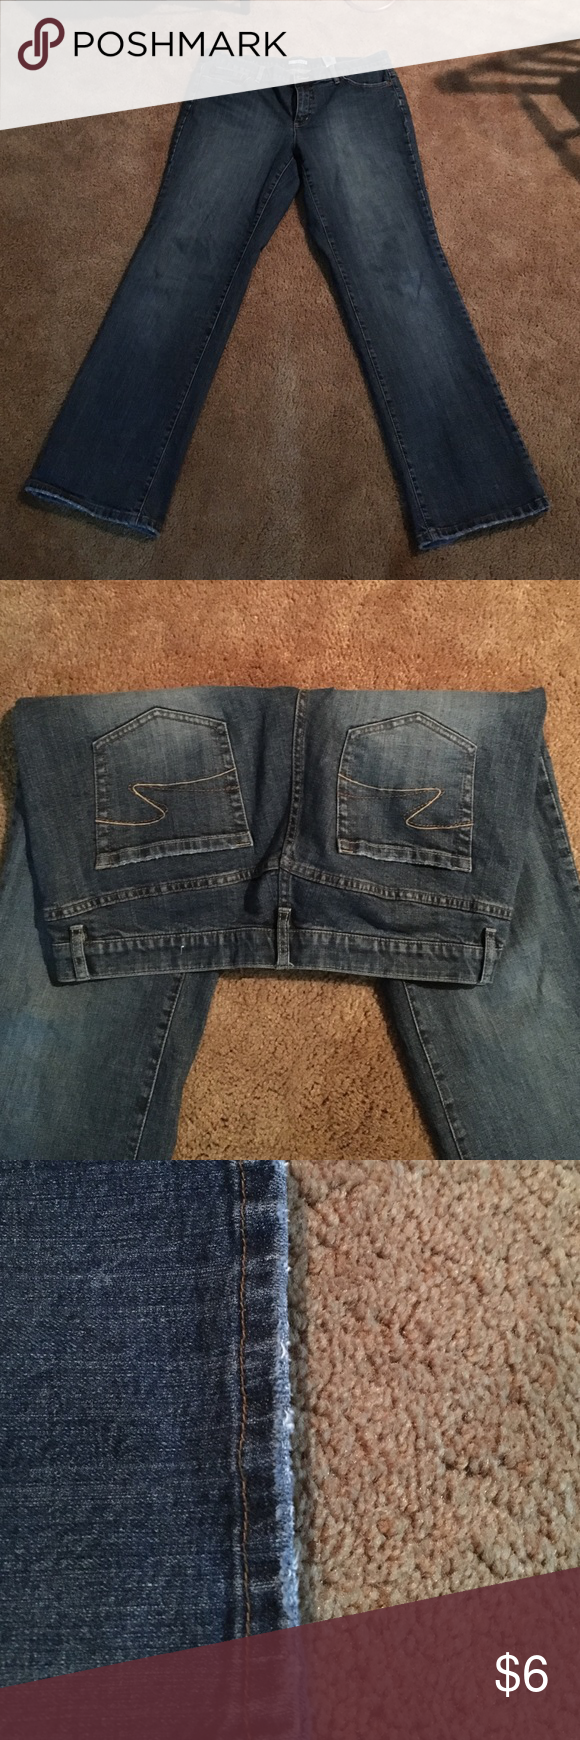 Tint blue jeans. SZ:14. Tint blue jeans. SZ:14. Inseam 30. Slight wear at ankles. Tint Pants Boot Cut & Flare